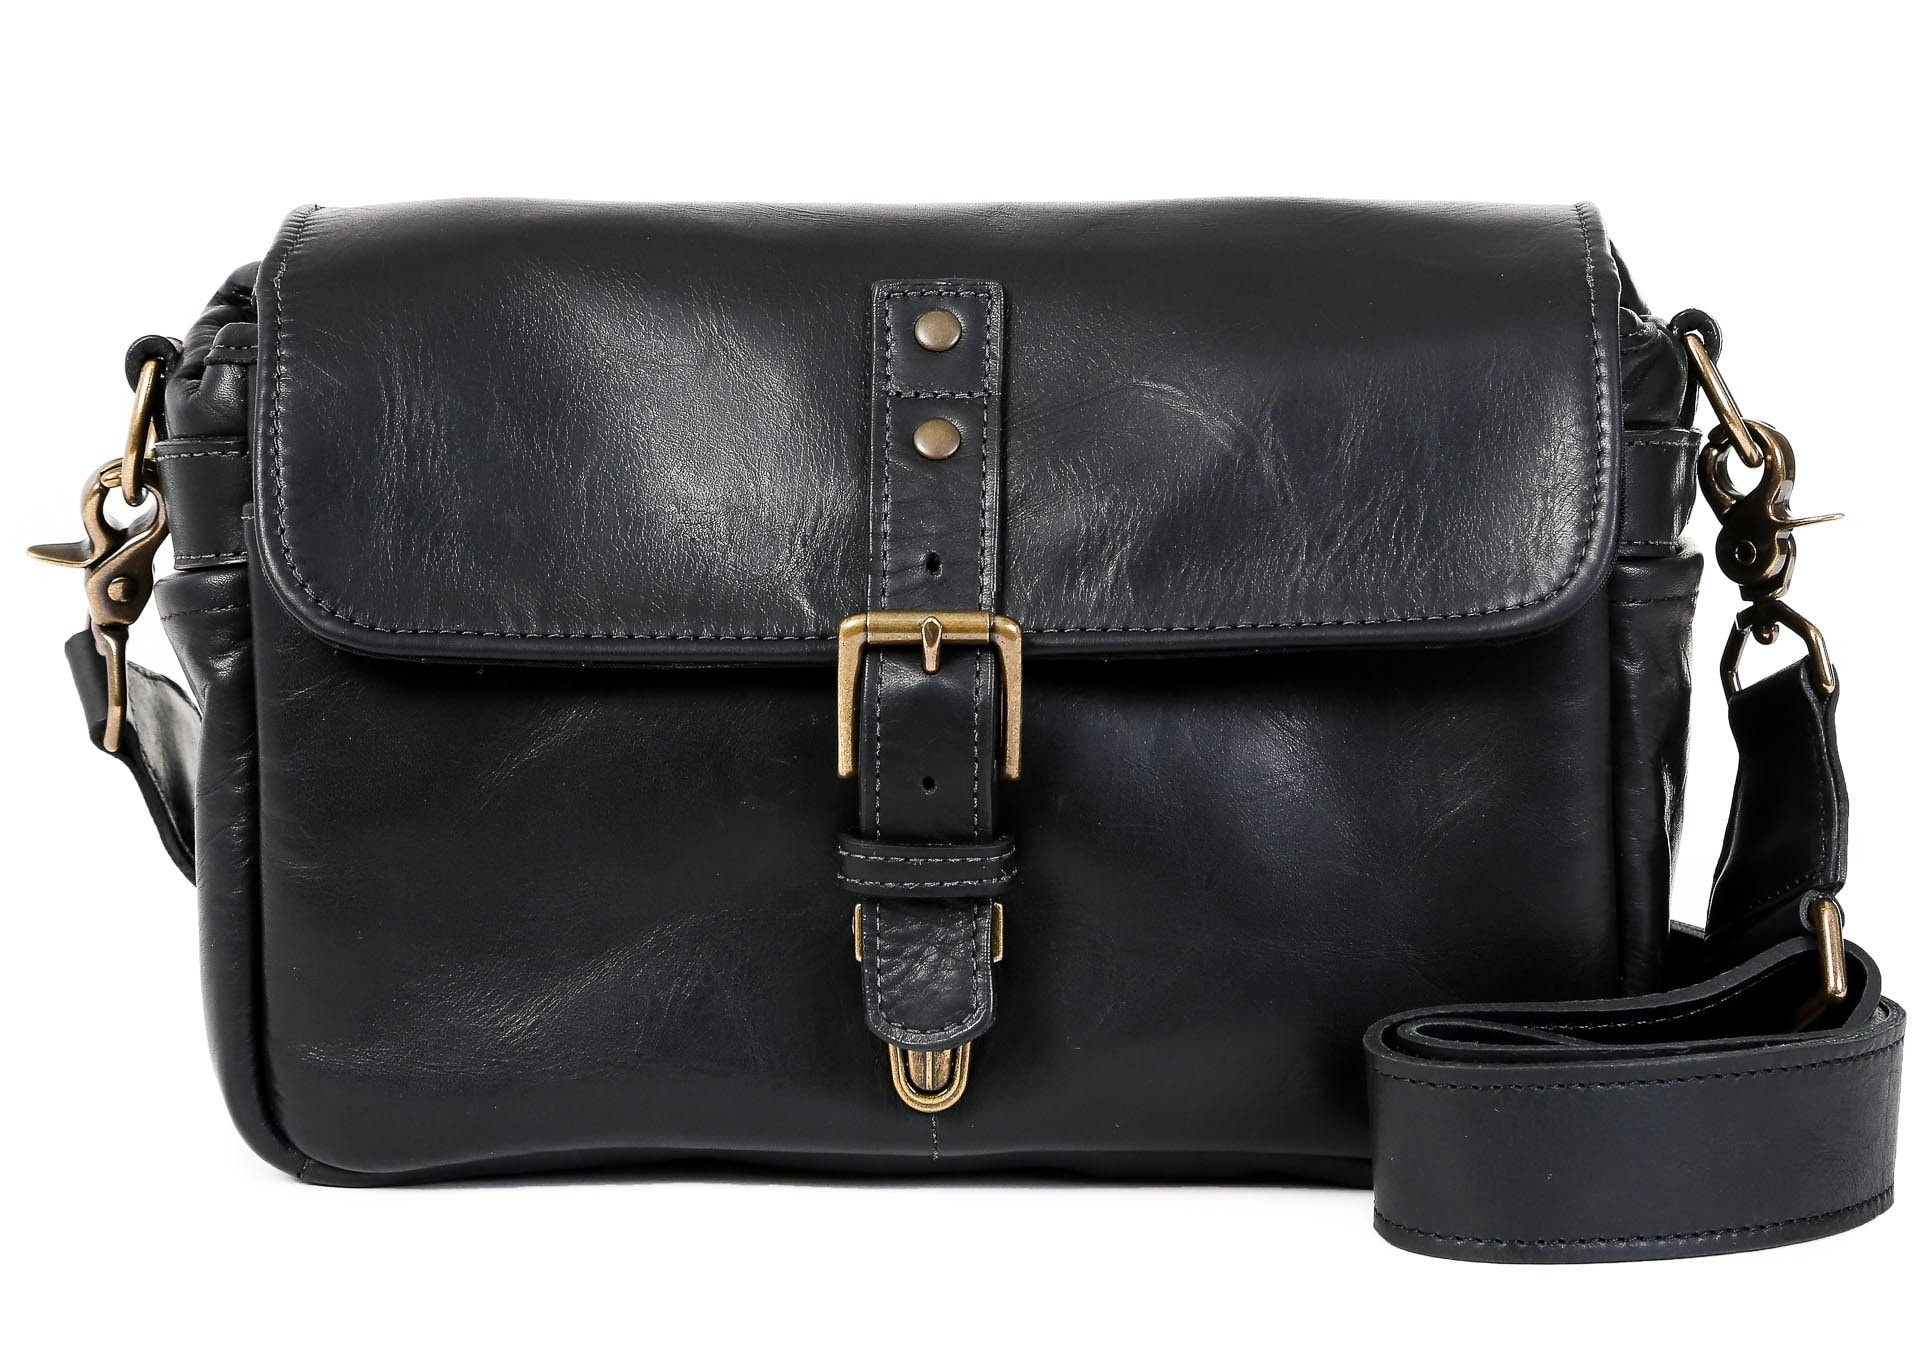 ONA Bags Bowery Black Leather